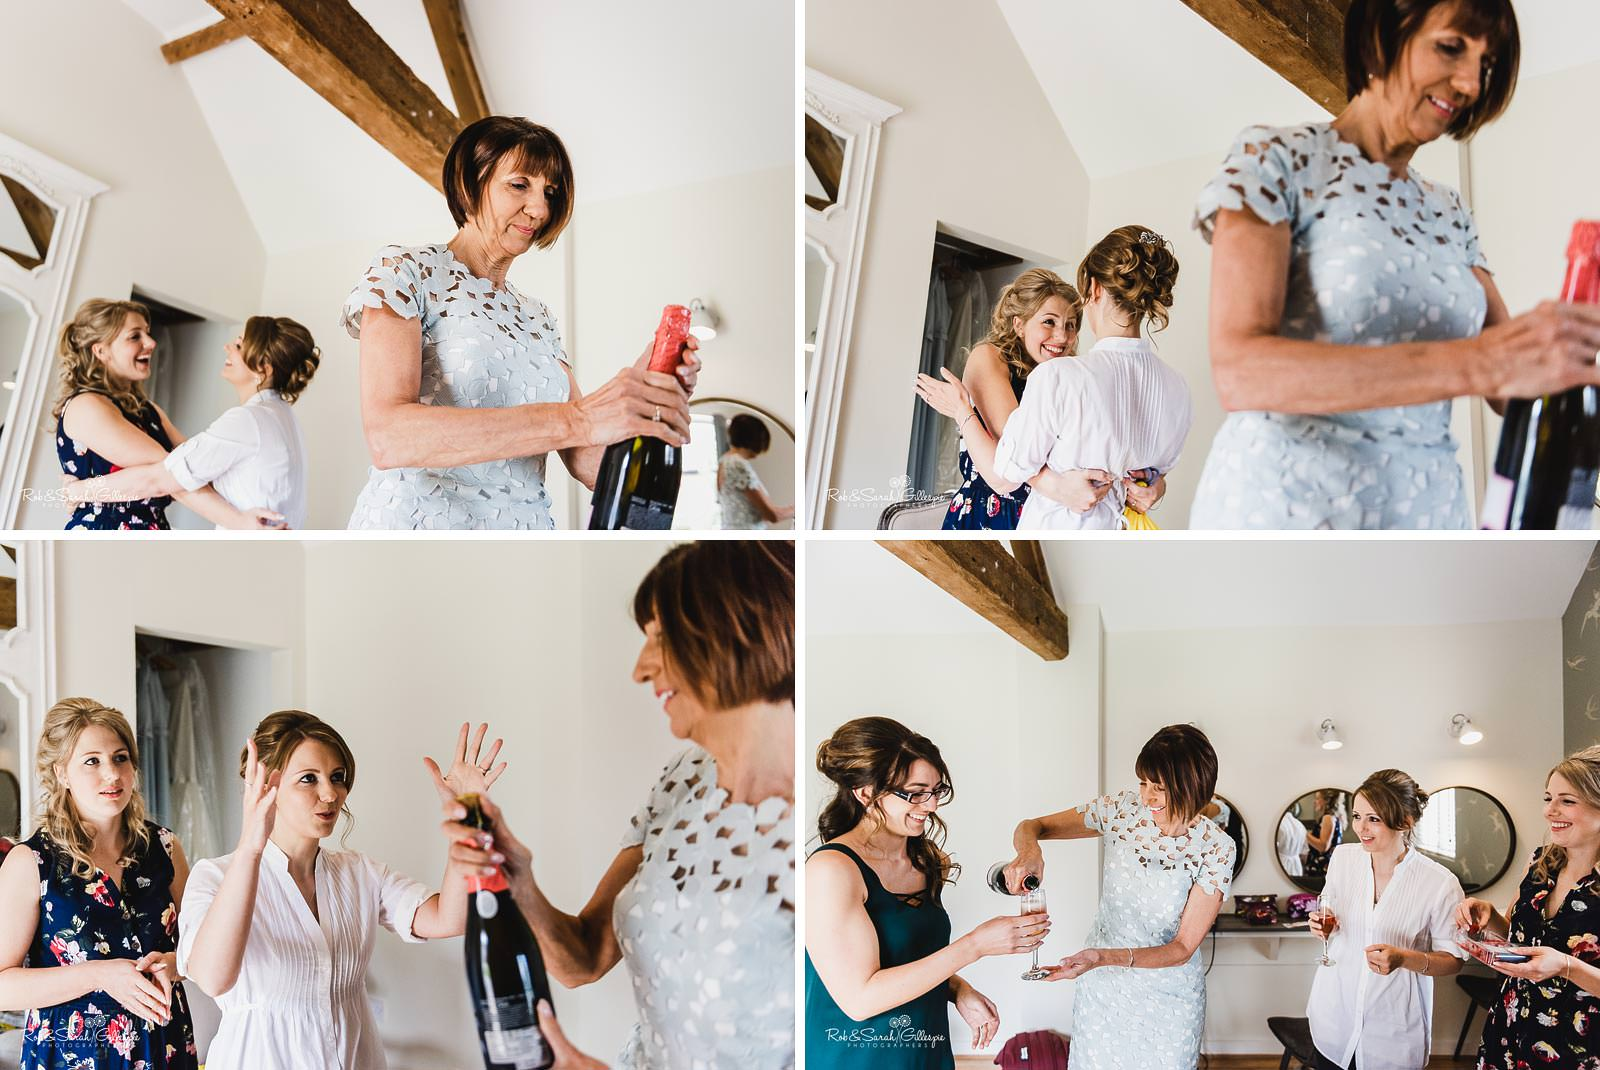 Bride and bridesmaids prepare for weding at Swallows Nest Barn